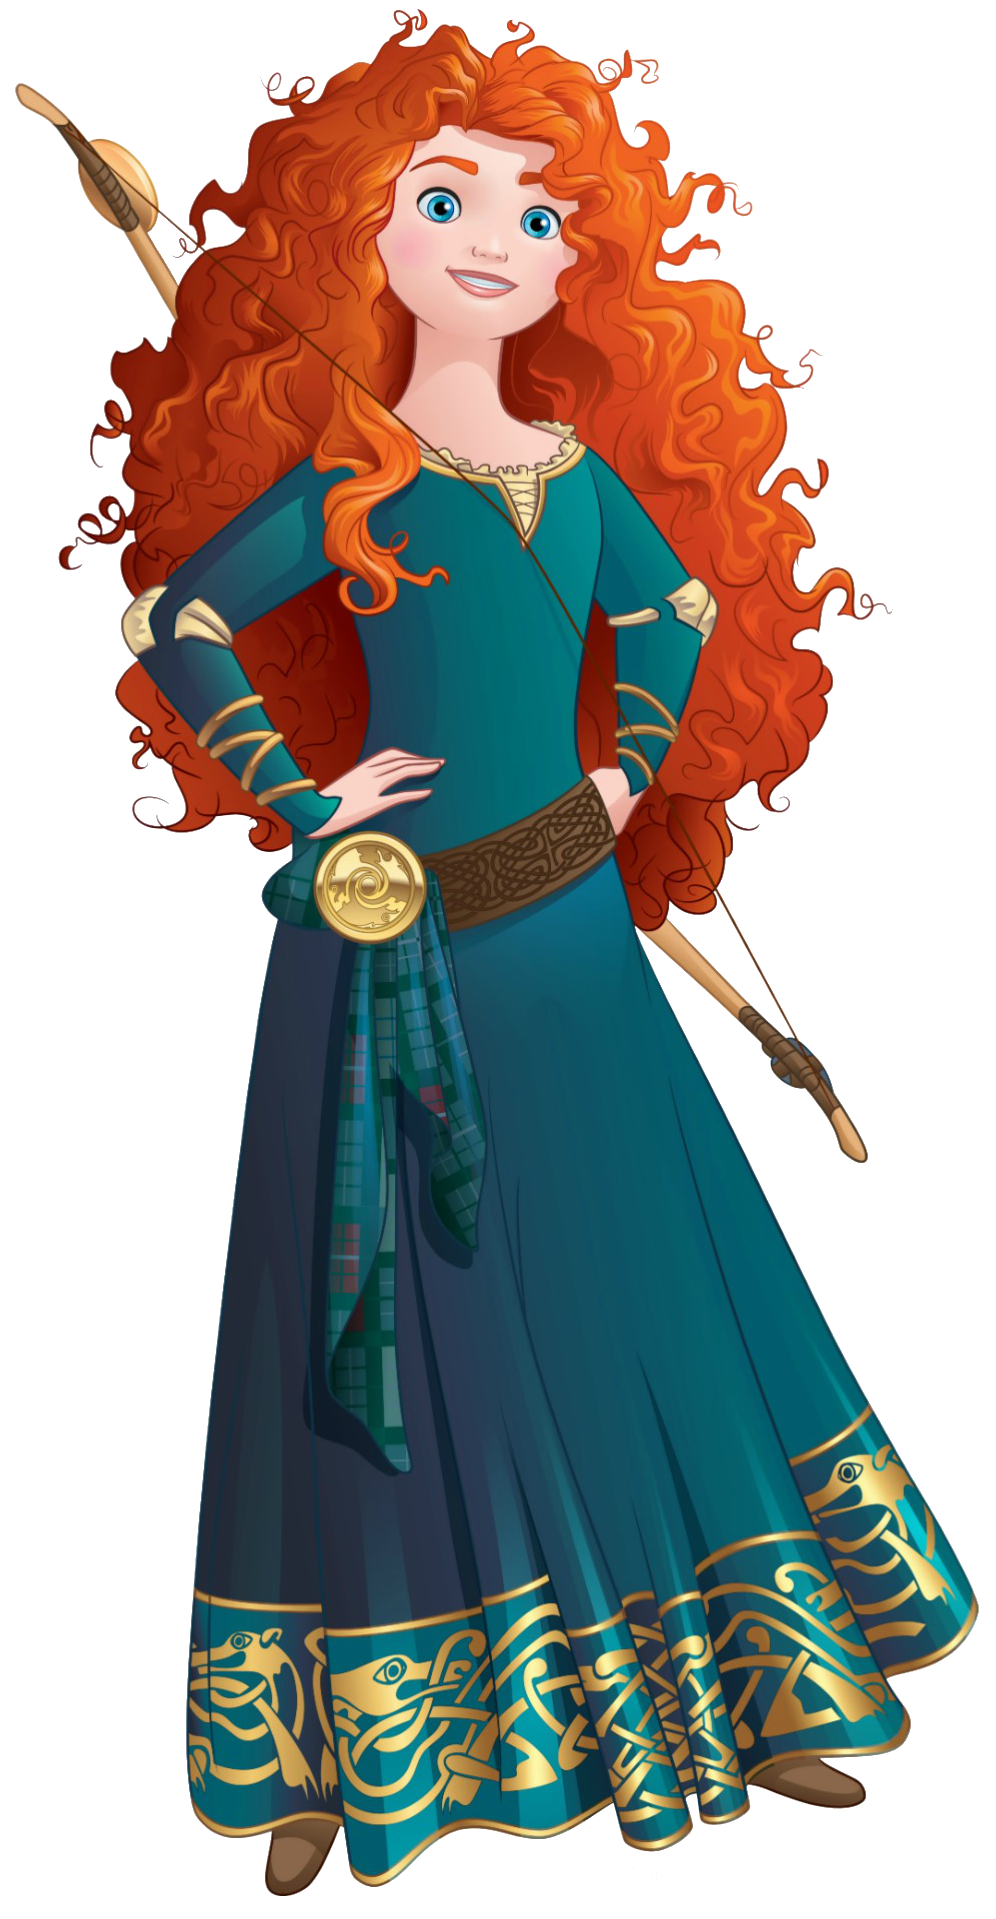 Disney Merida Transparent Images  1836